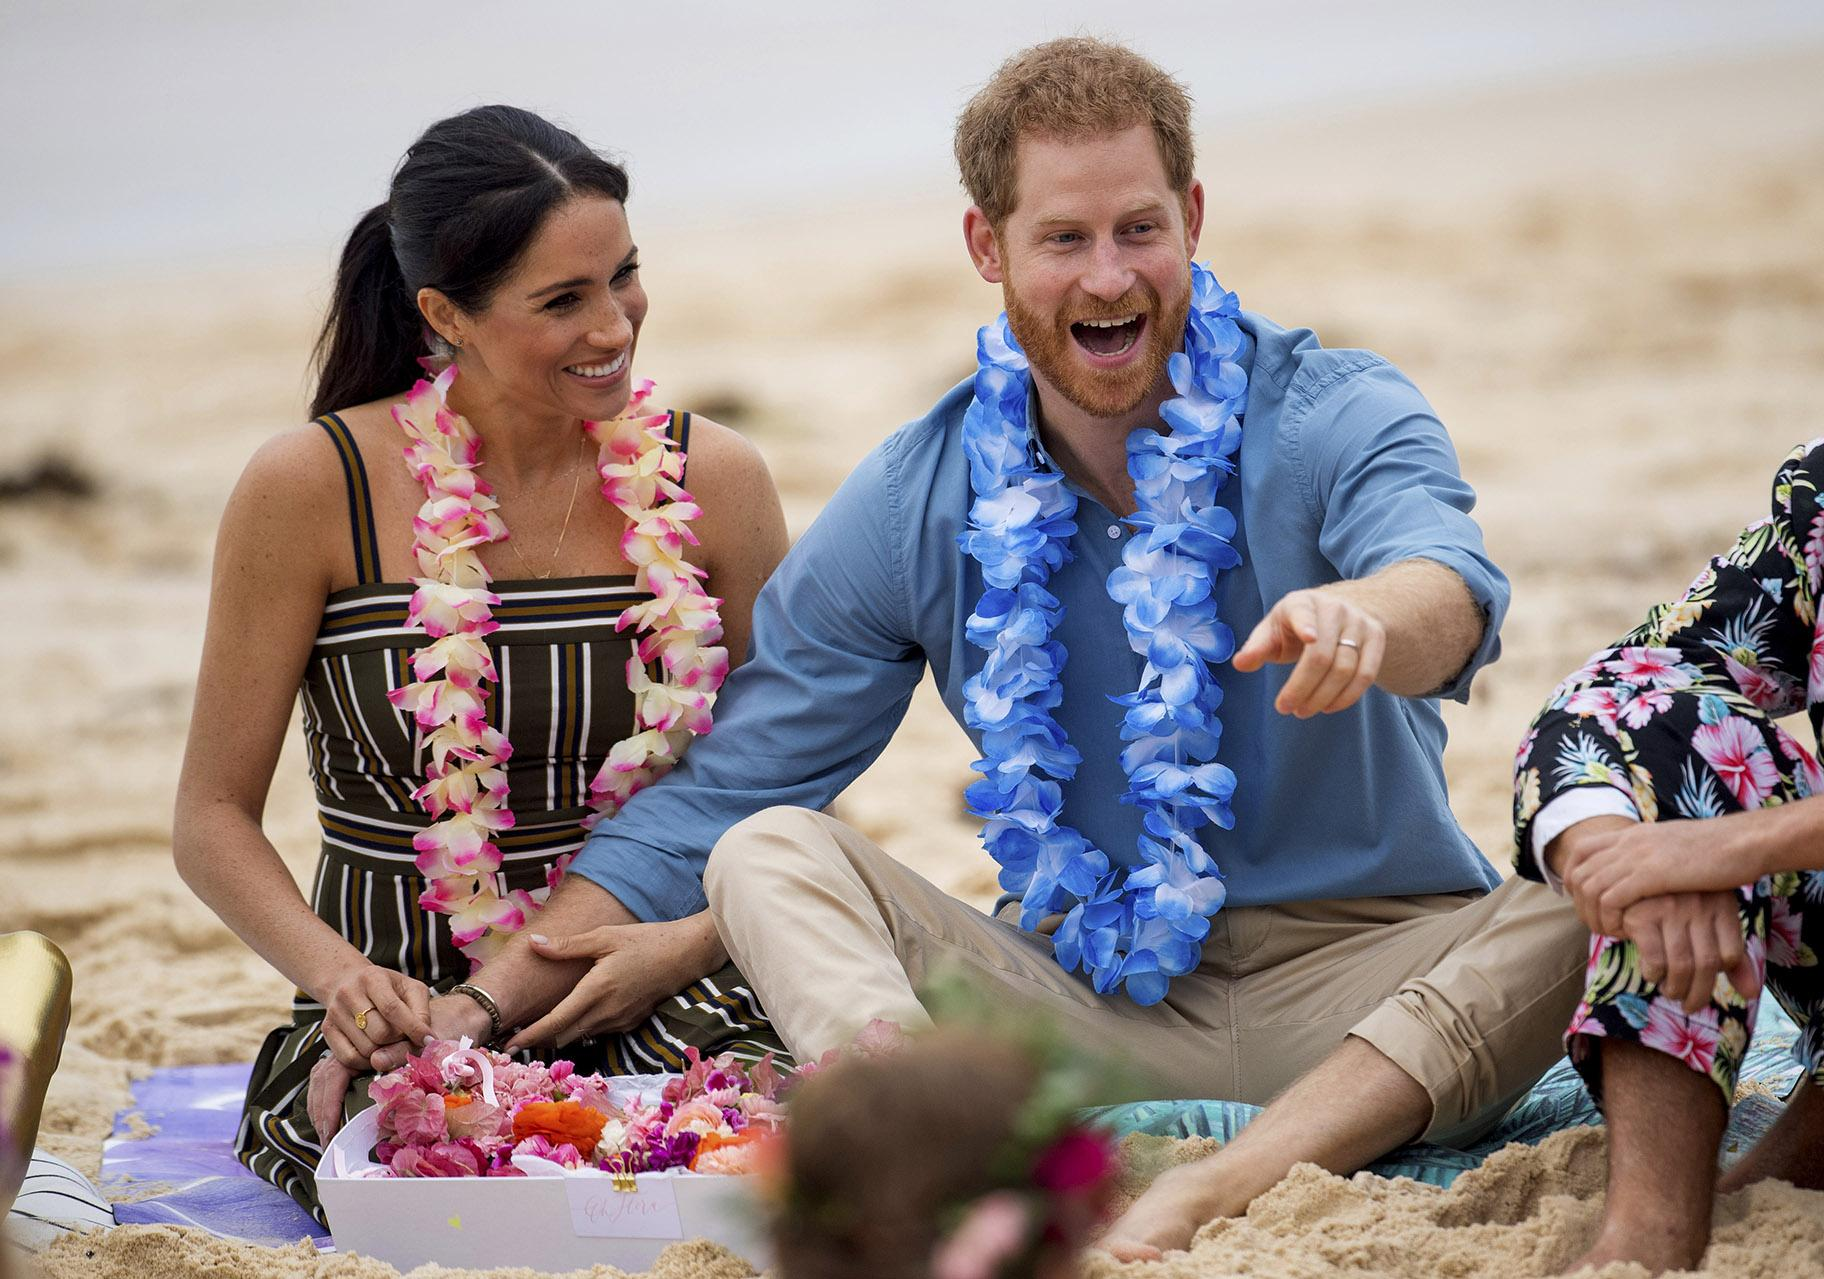 In this Friday, Oct. 19, 2018 file photo, Britain's Prince Harry and Meghan, Duchess of Sussex, meet with a local surfing community group, known as OneWave, raising awareness for mental health and wellbeing in a fun and engaging way at Bondi Beach in Sydney, Australia. (Dominic Lipinski / Pool via AP)